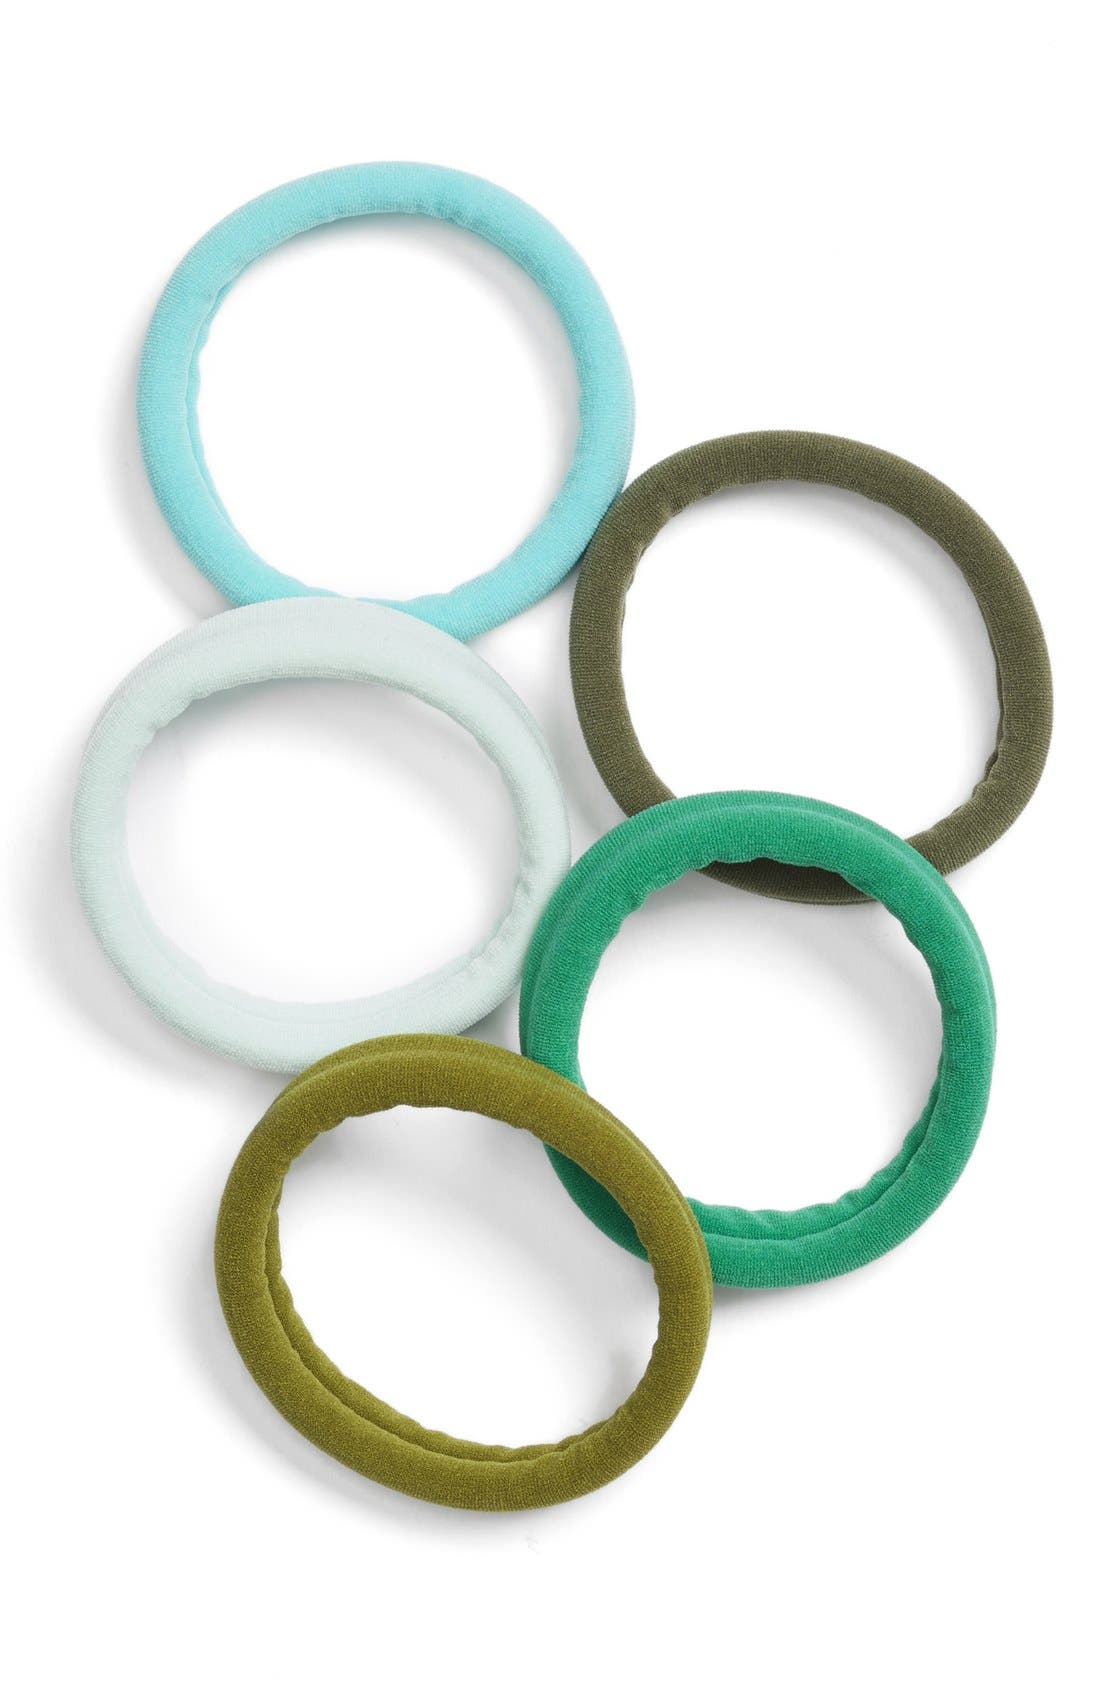 Set of 5 Sport Ponytail Holders,                             Main thumbnail 9, color,